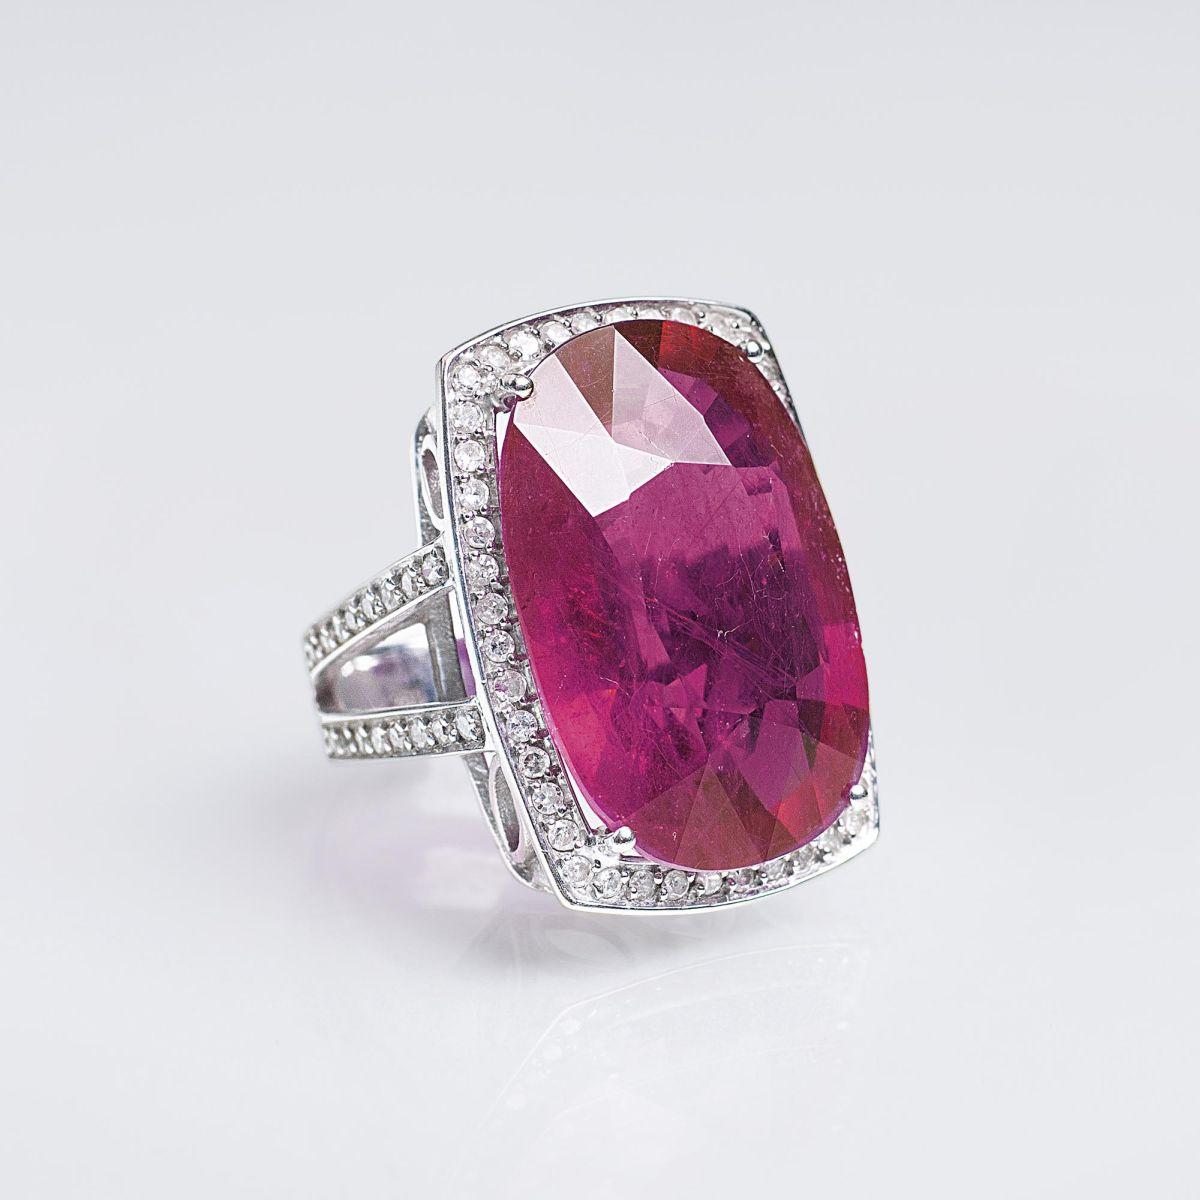 A Large Ruby Diamond Ring